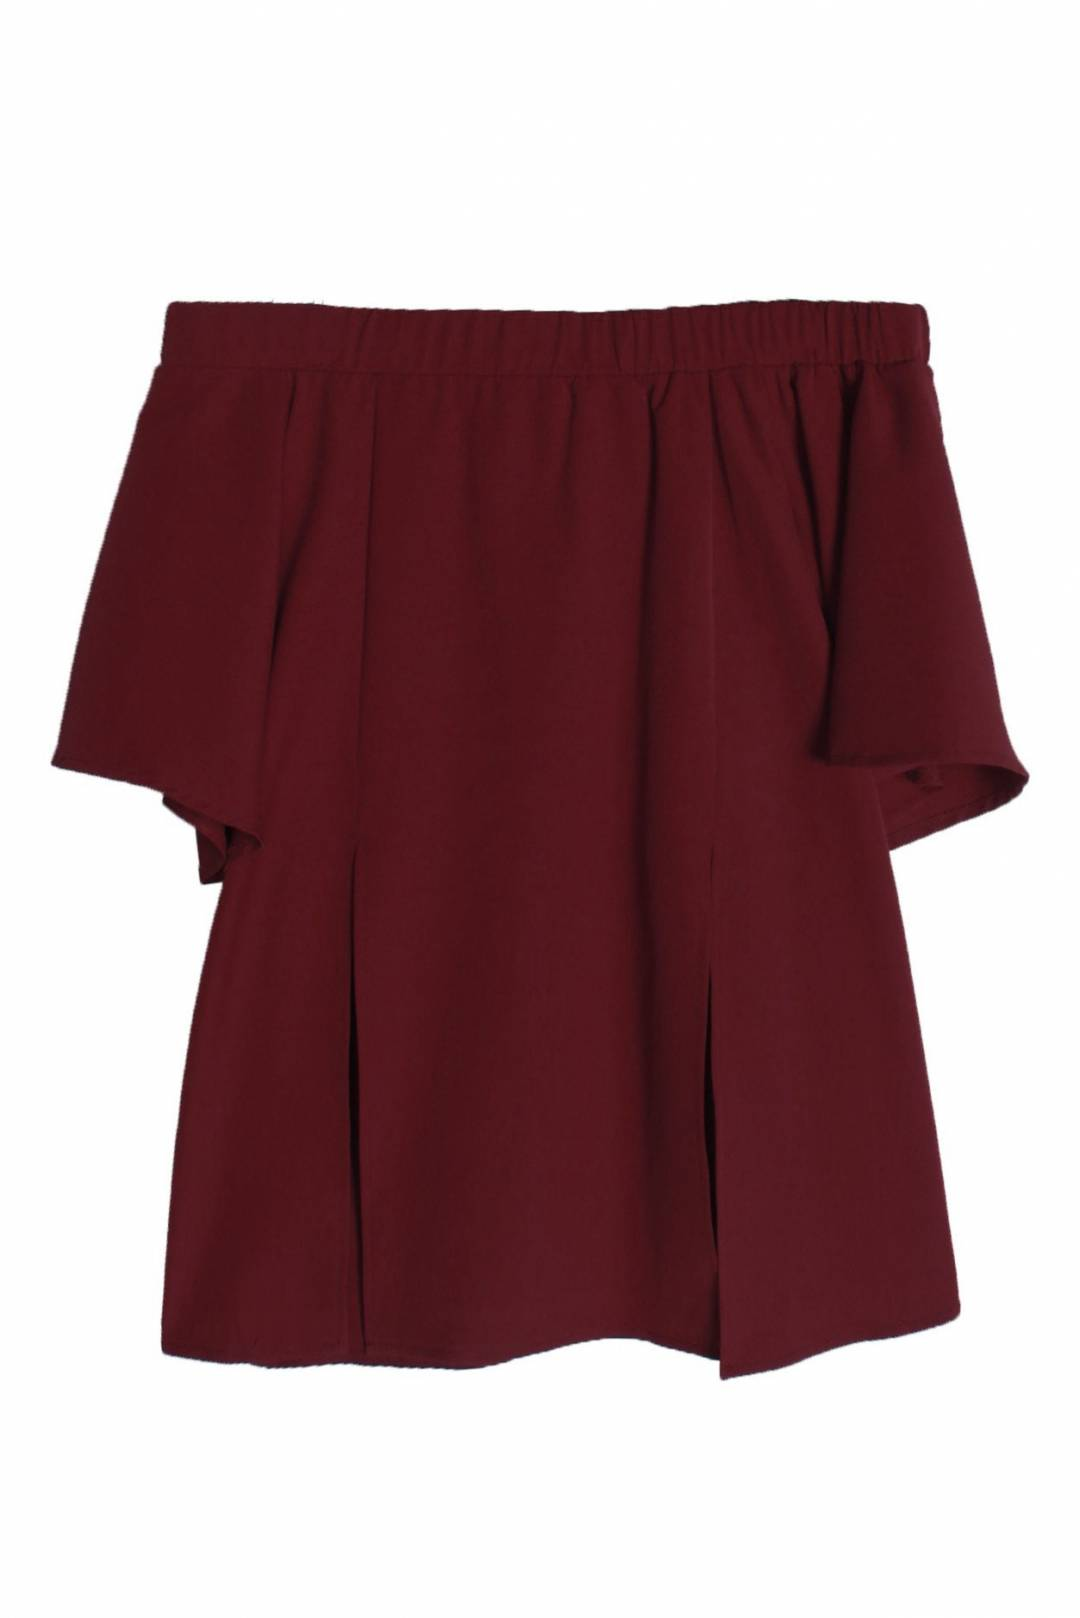 Double Trouble Top in Maroon